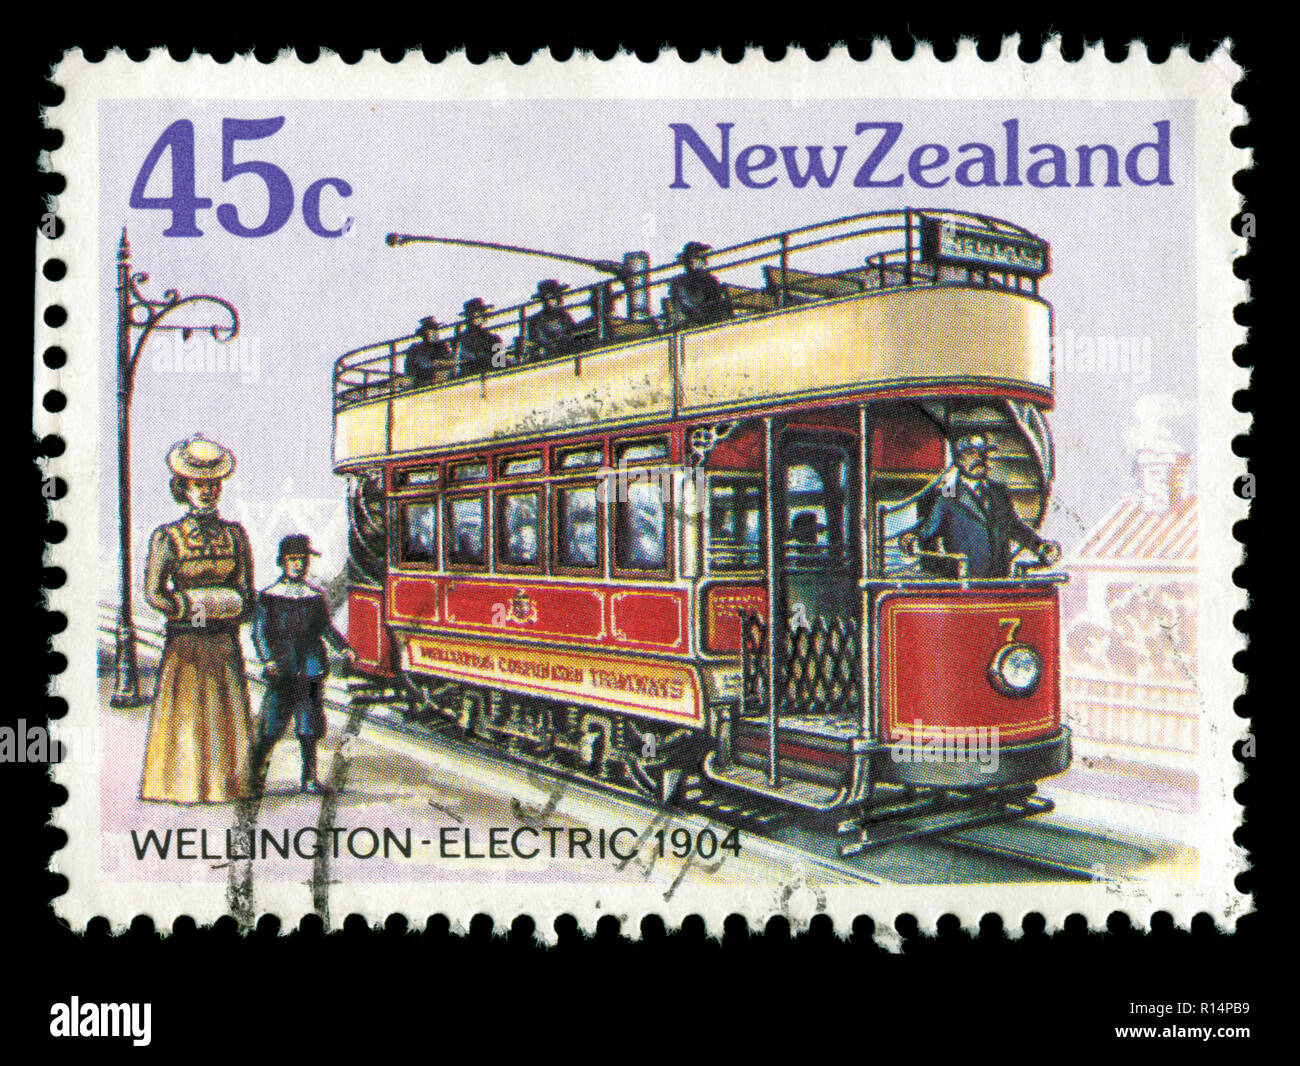 Postmarked stamp from New Zealand in the Vintage Trams series issued in 1985 - Stock Image